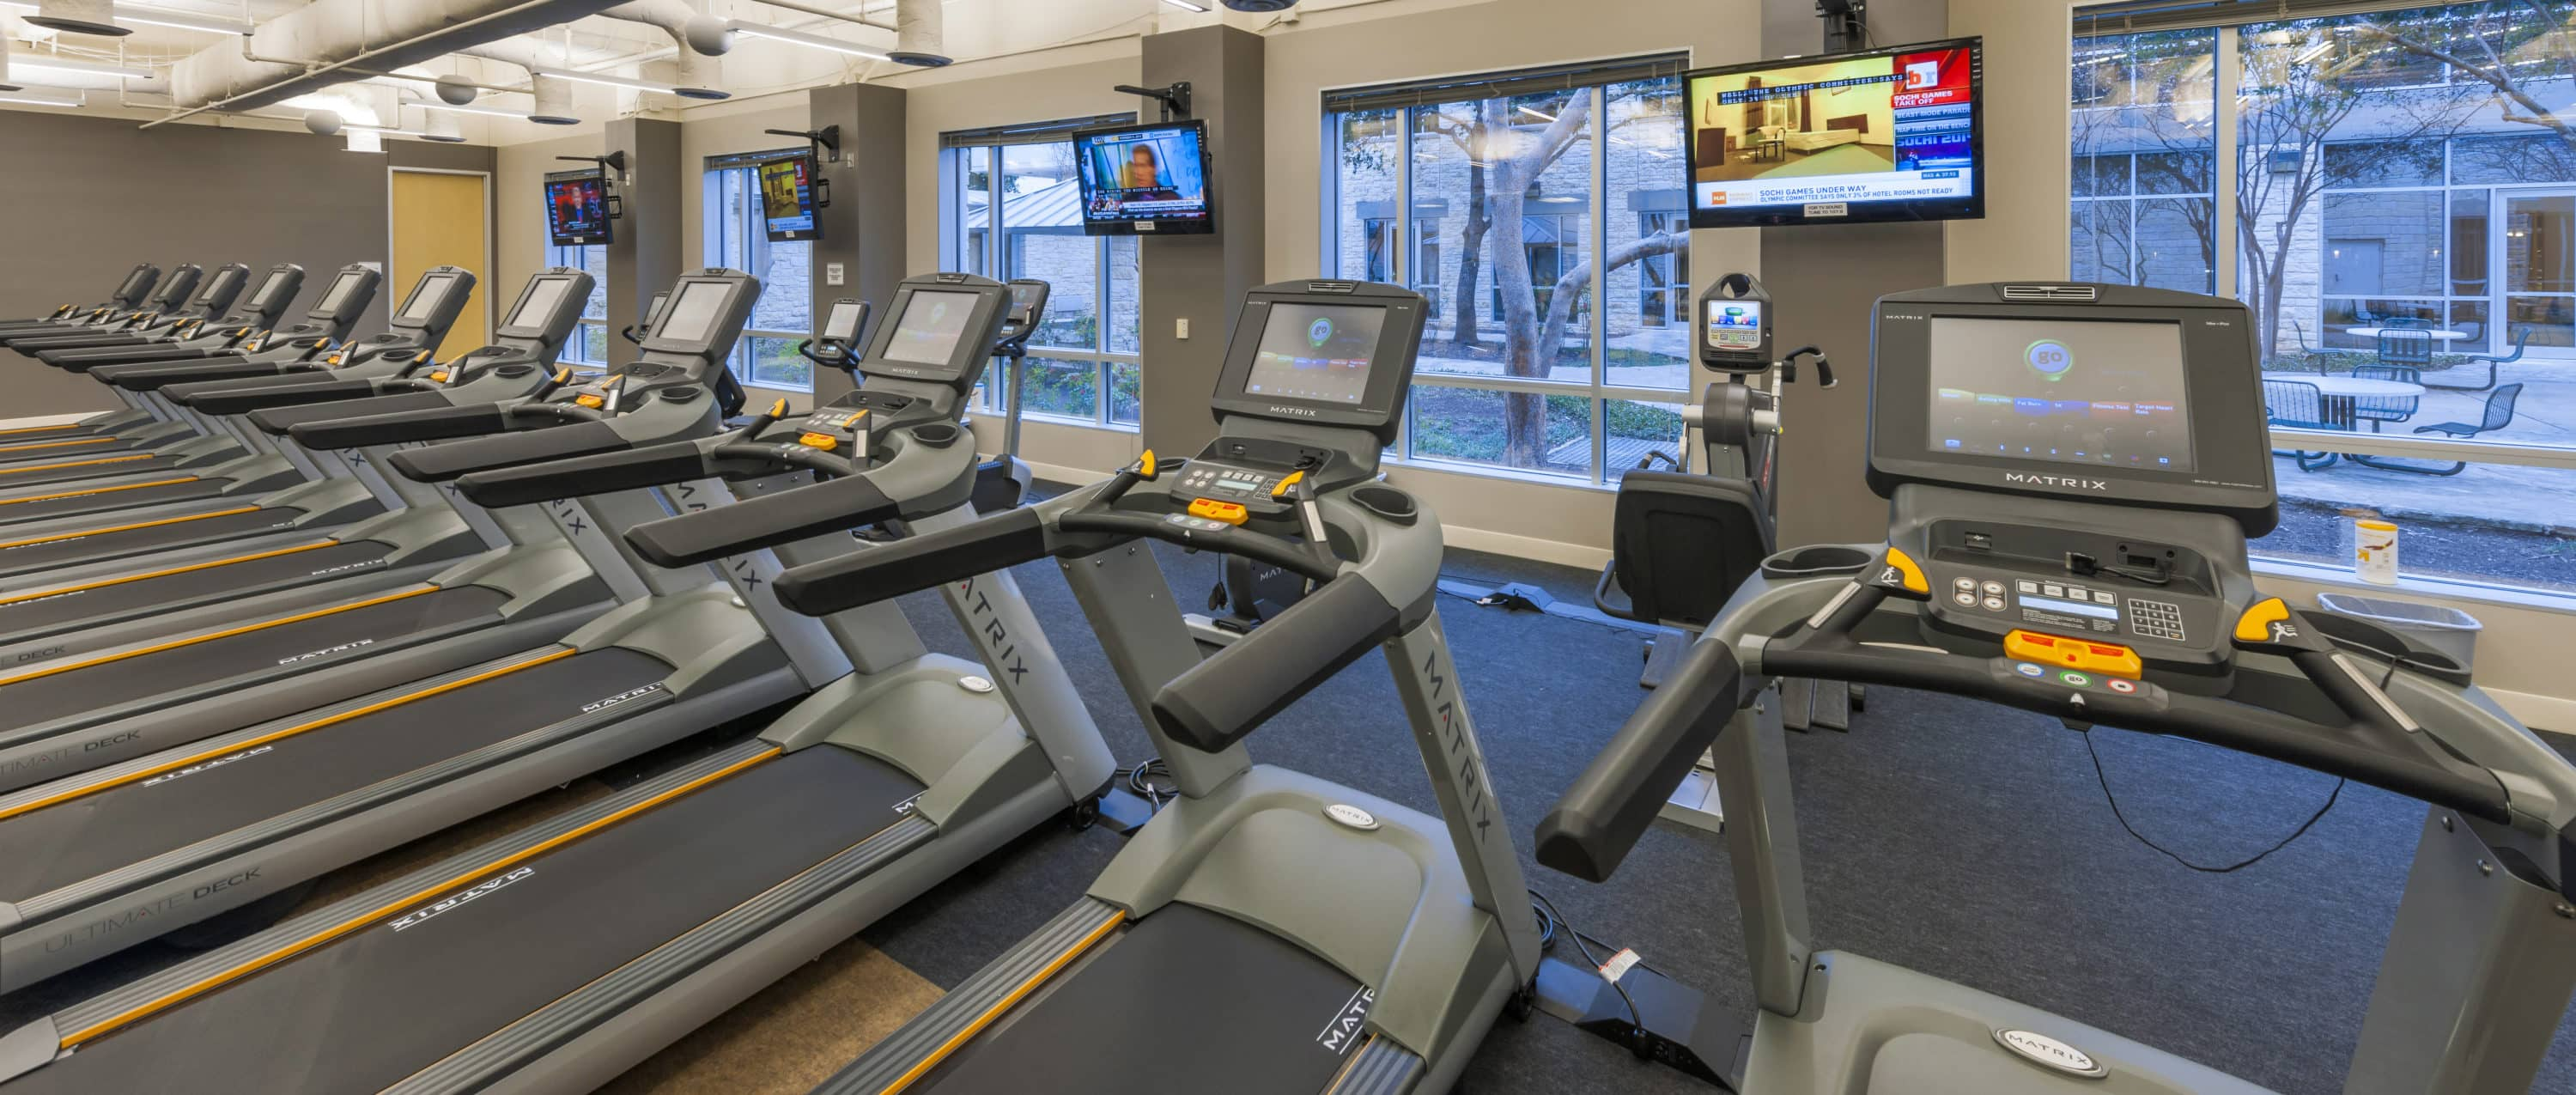 Fitness Center at 7700 Parmer Office Campus in Austin, Texas